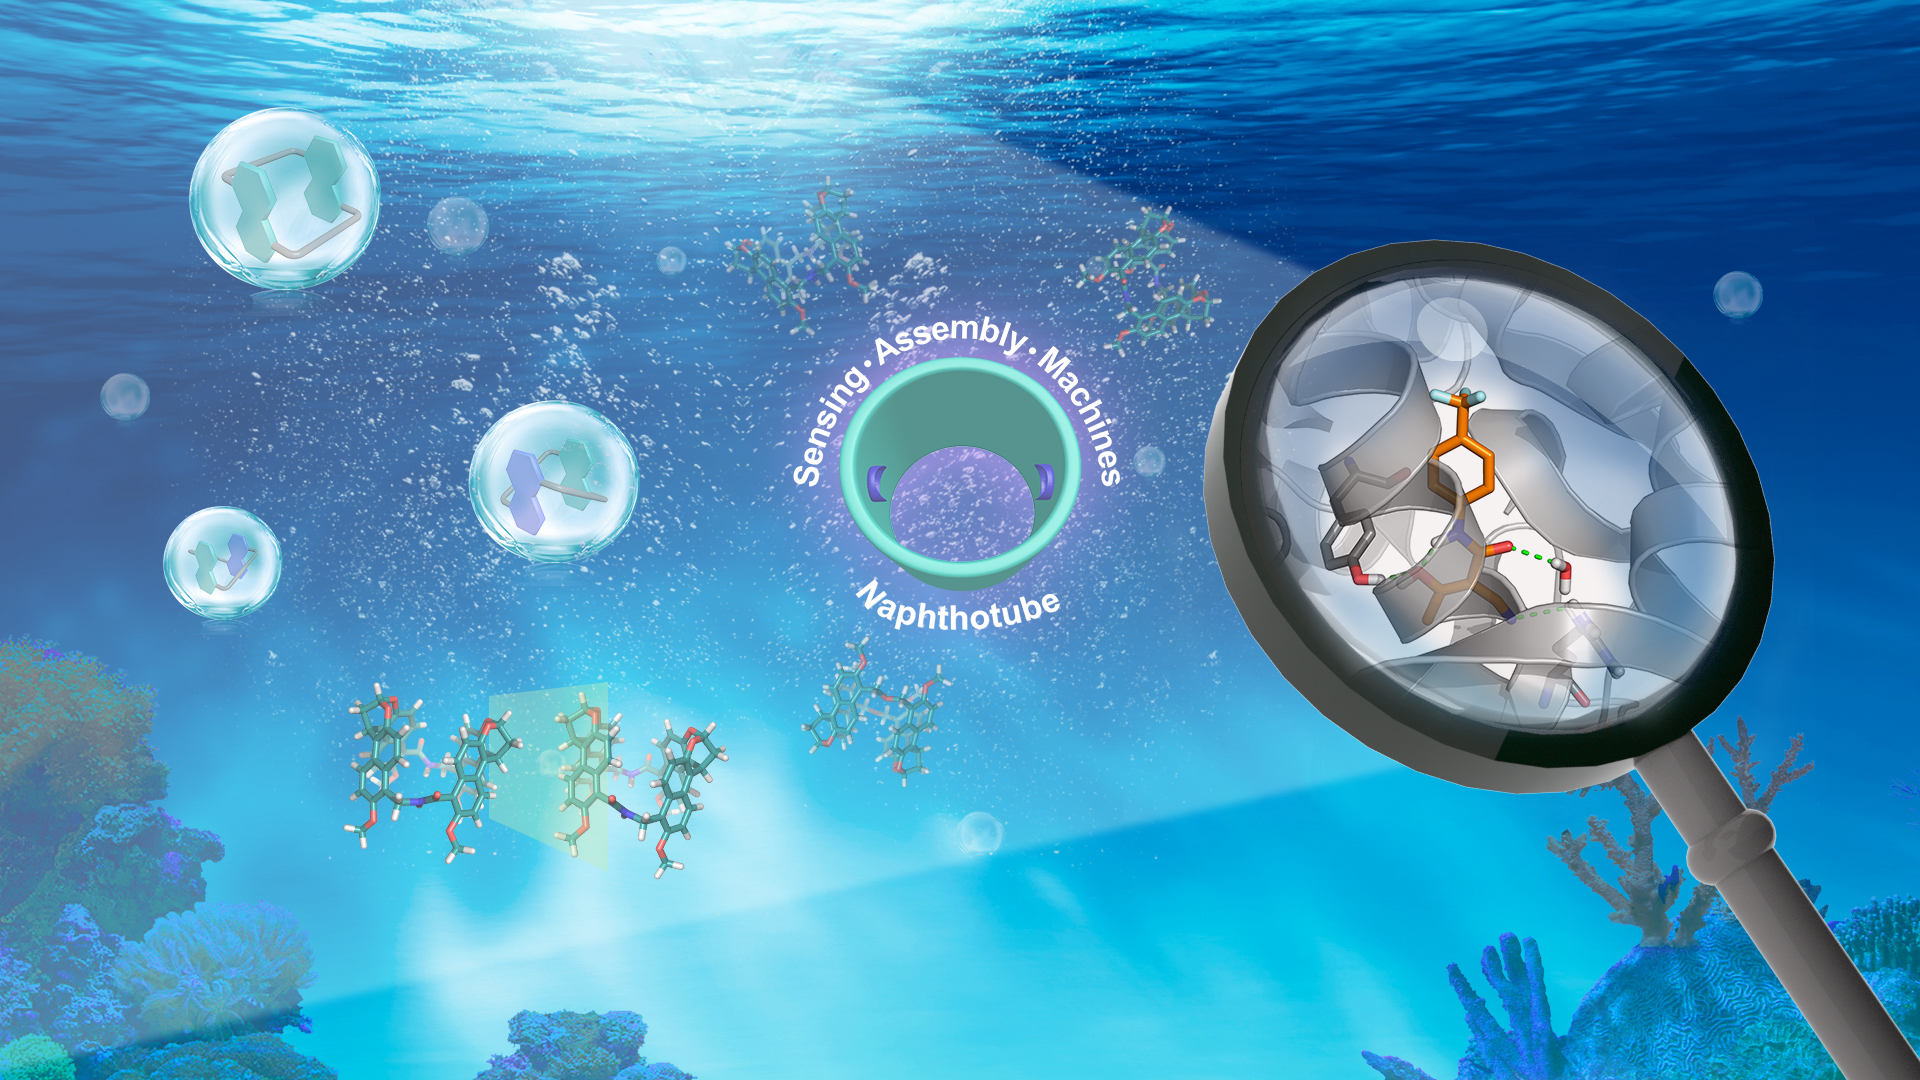 SUSTech chemical researchers make progress in biomimetic molecular recognition